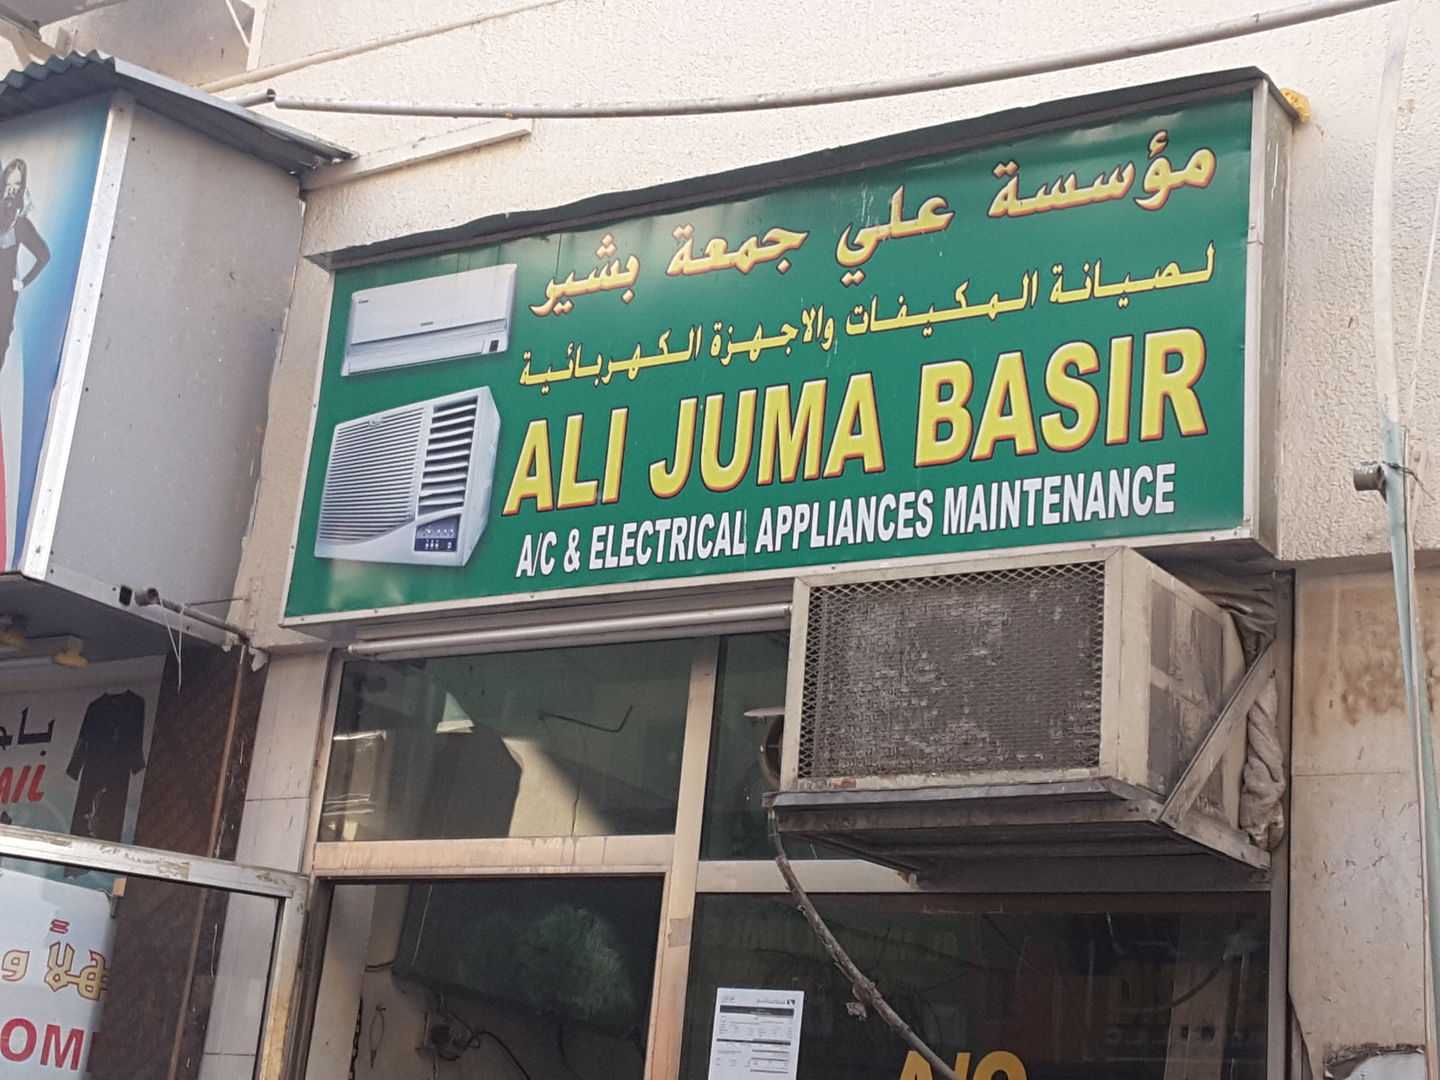 HiDubai-business-ali-juma-basir-a-c-electrical-appliances-maintenance-home-handyman-maintenance-services-ayal-nasir-dubai-2